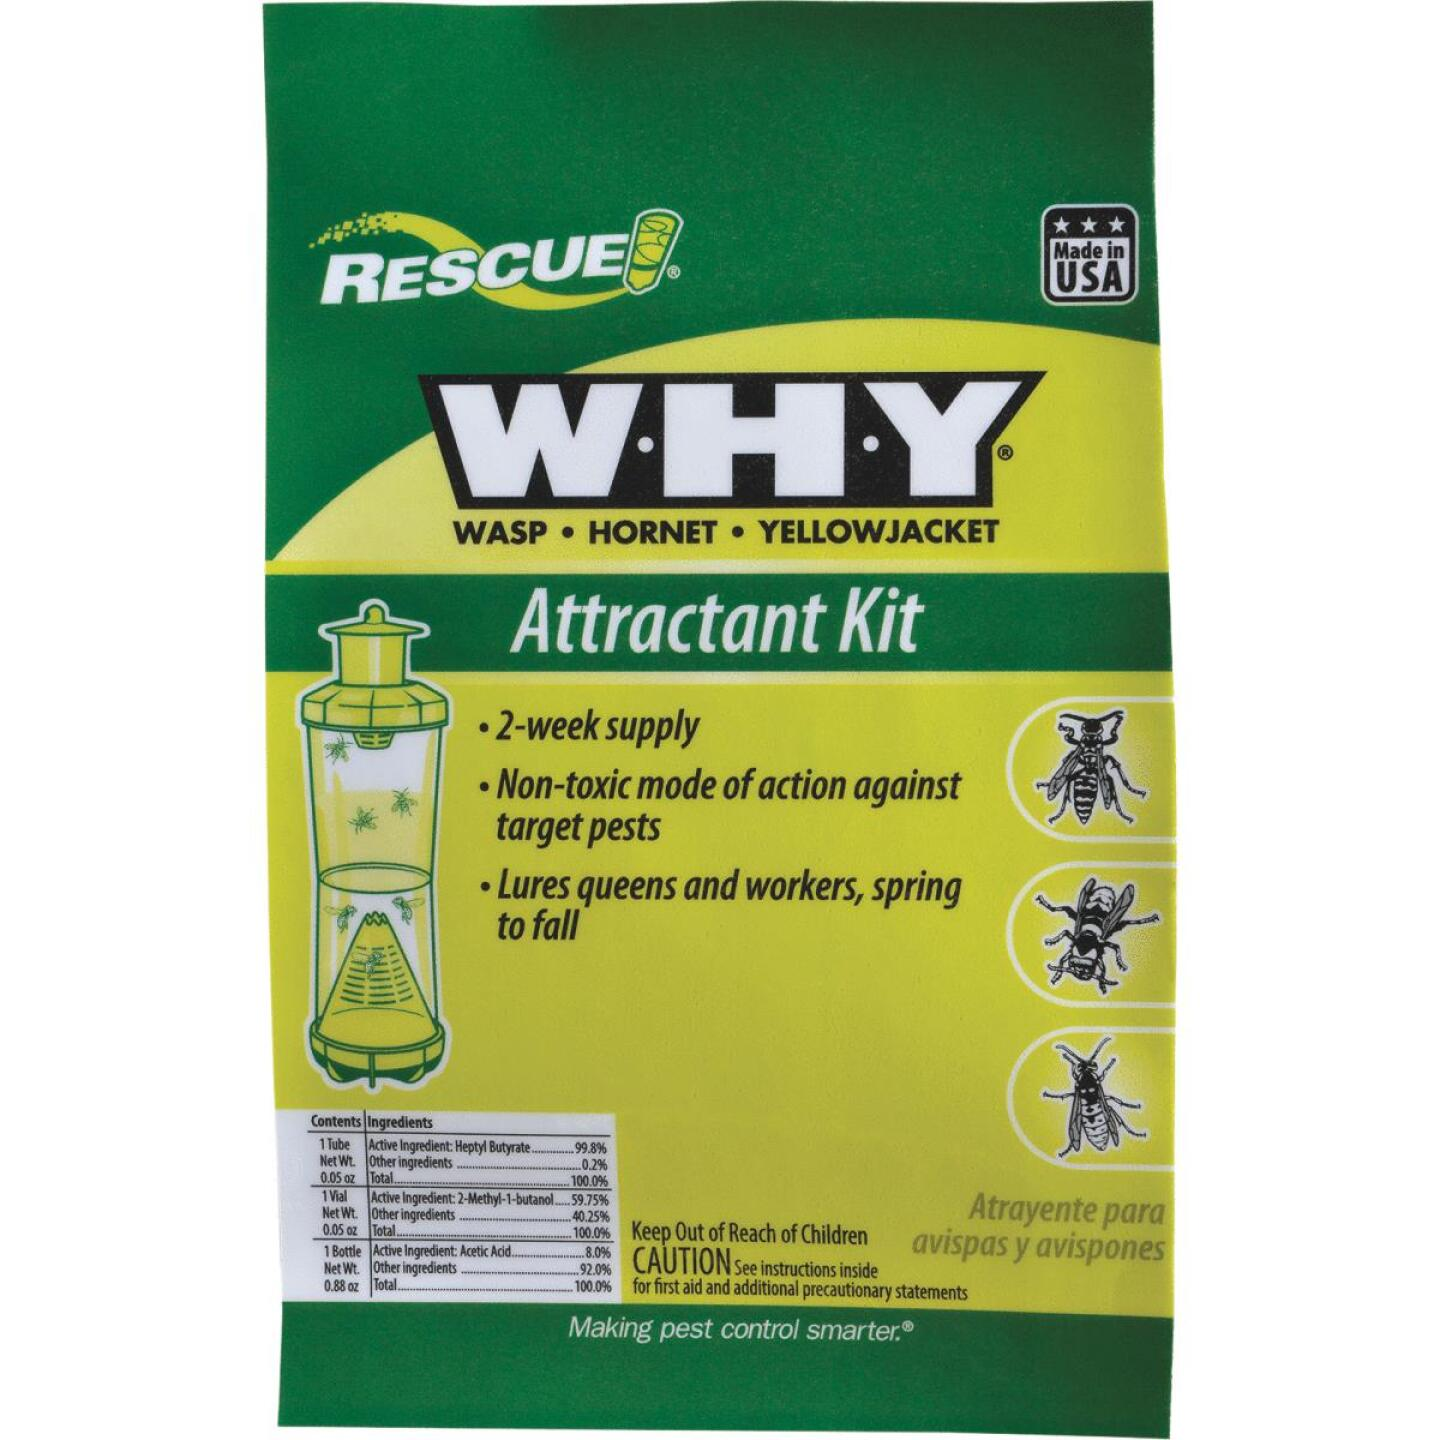 Rescue WHY Liquid Outdoor Wasp, Hornet, & Yellow Jacket Attractant Kit Image 1